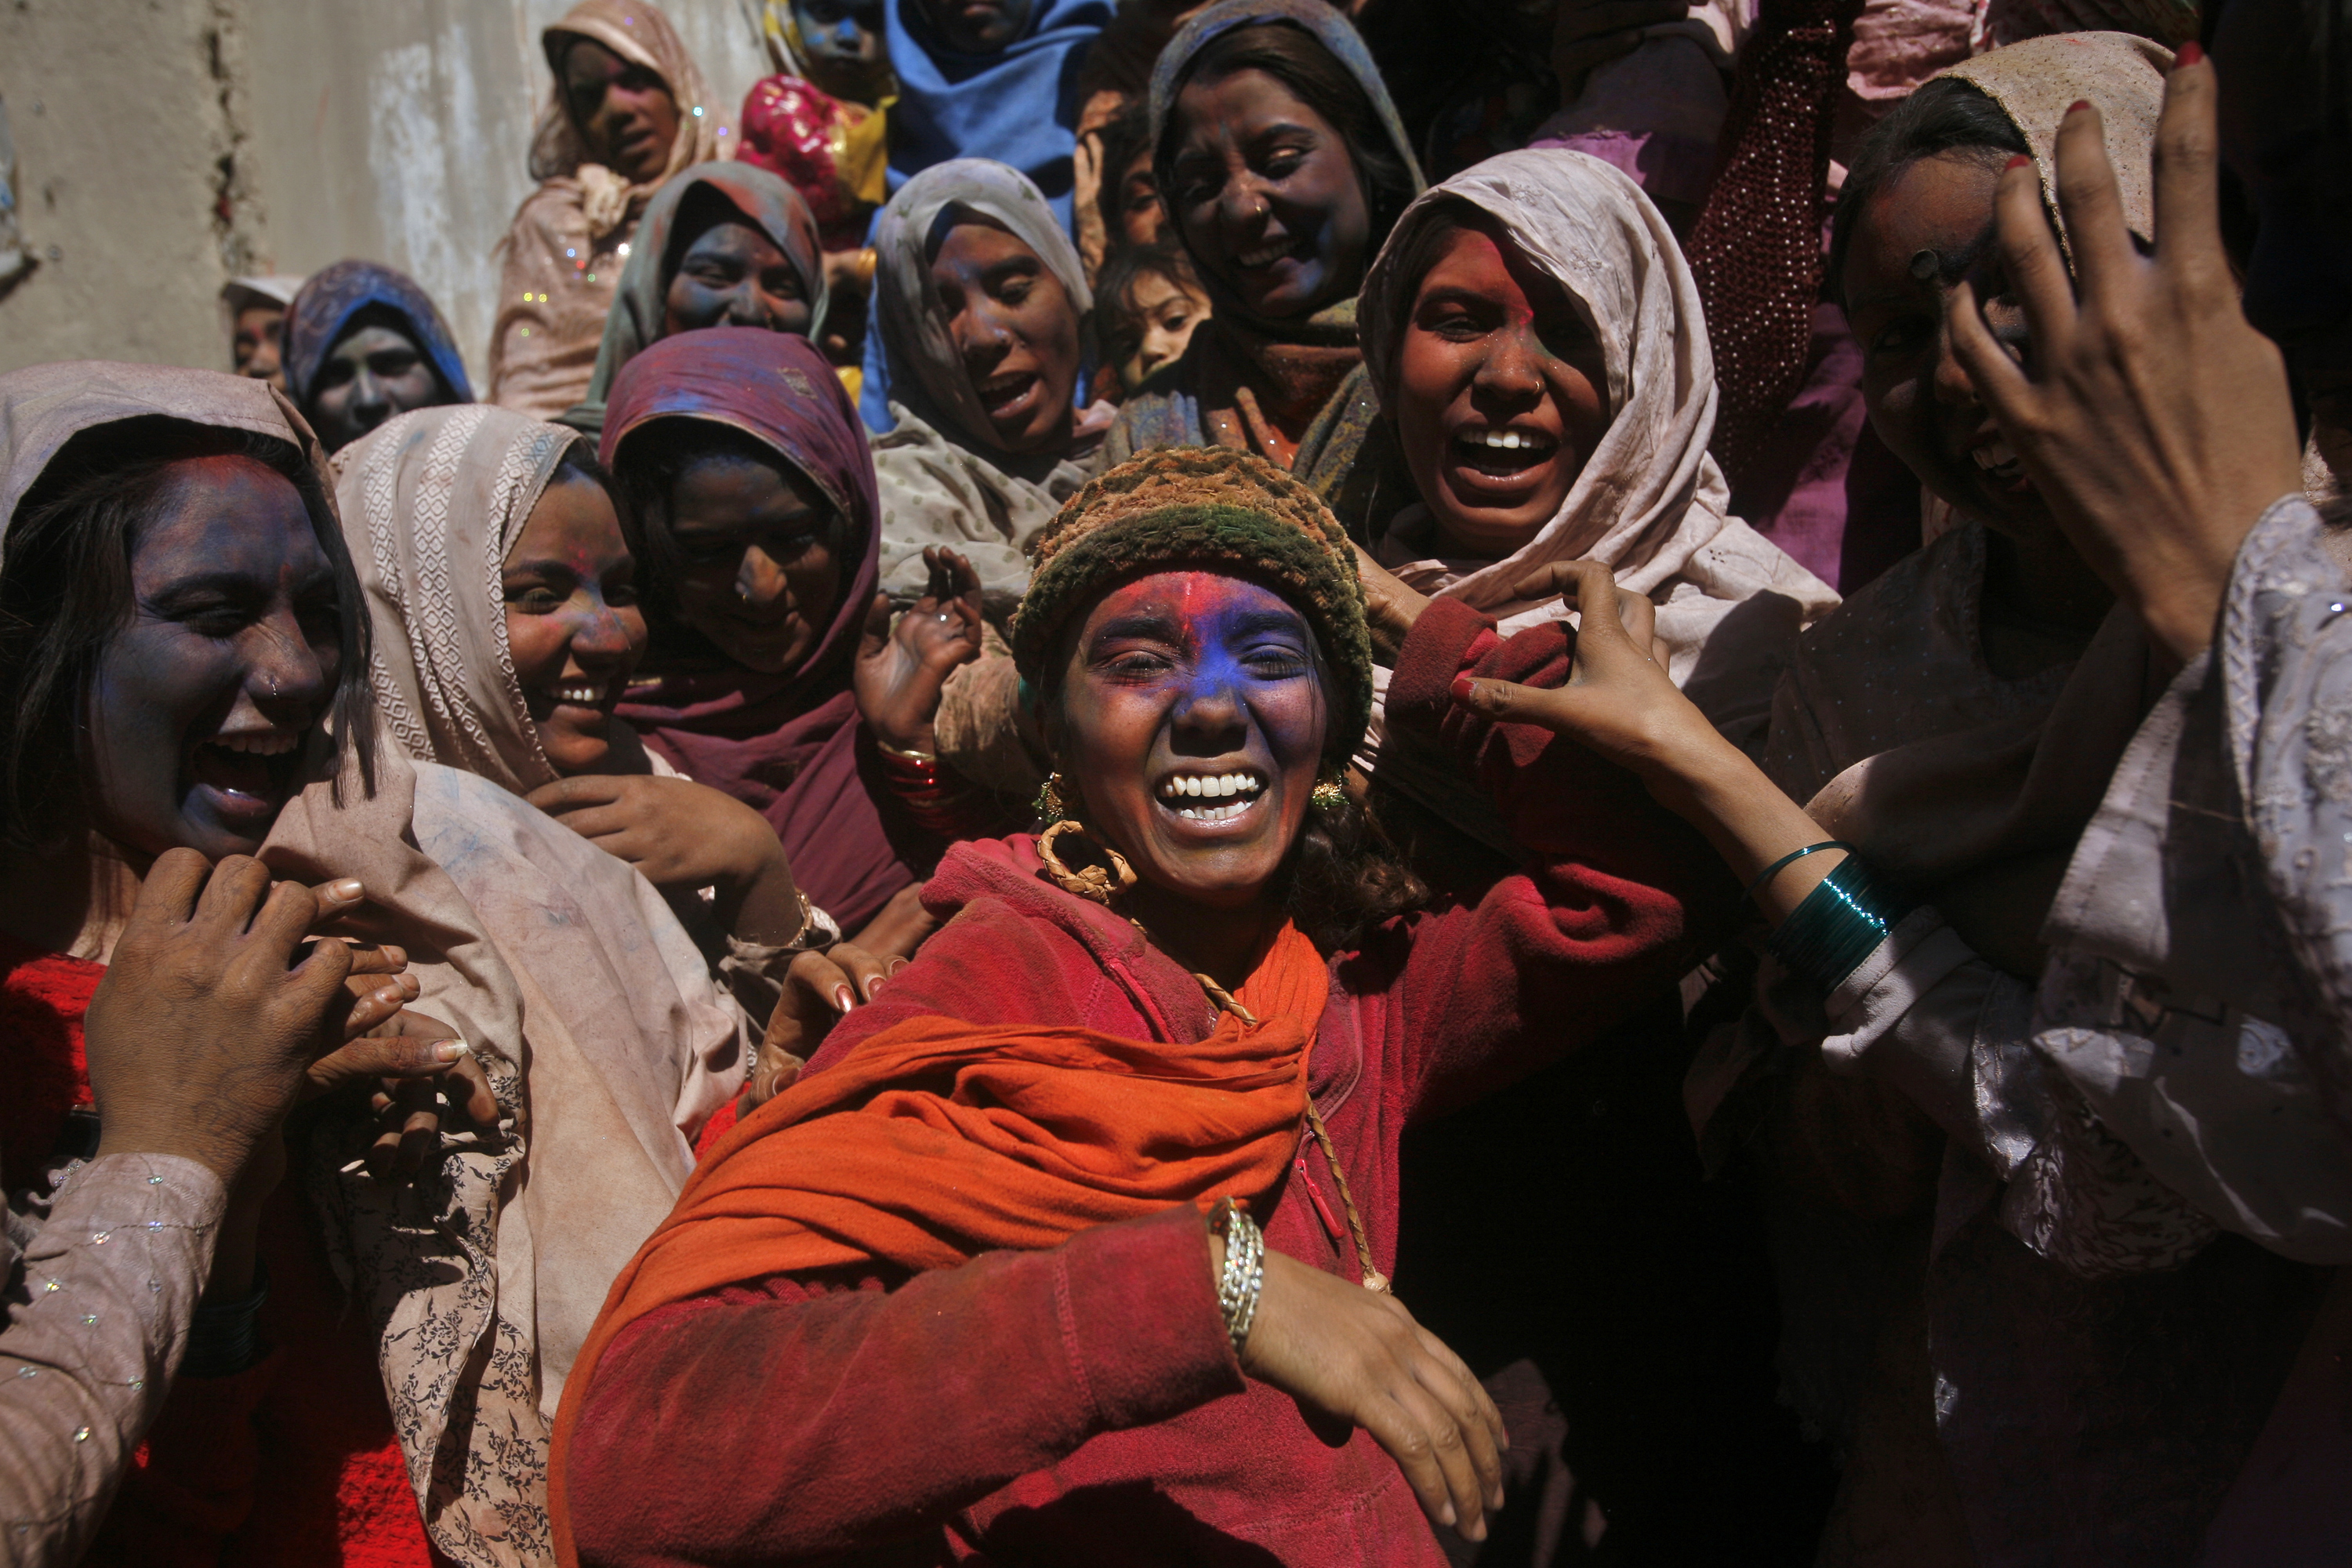 Pakistani Hindus celebrate Holi in Quetta. 'I wanted to tell these beautiful stories of minorities asserting their religious identity through festivals. Photo credit: Reuters